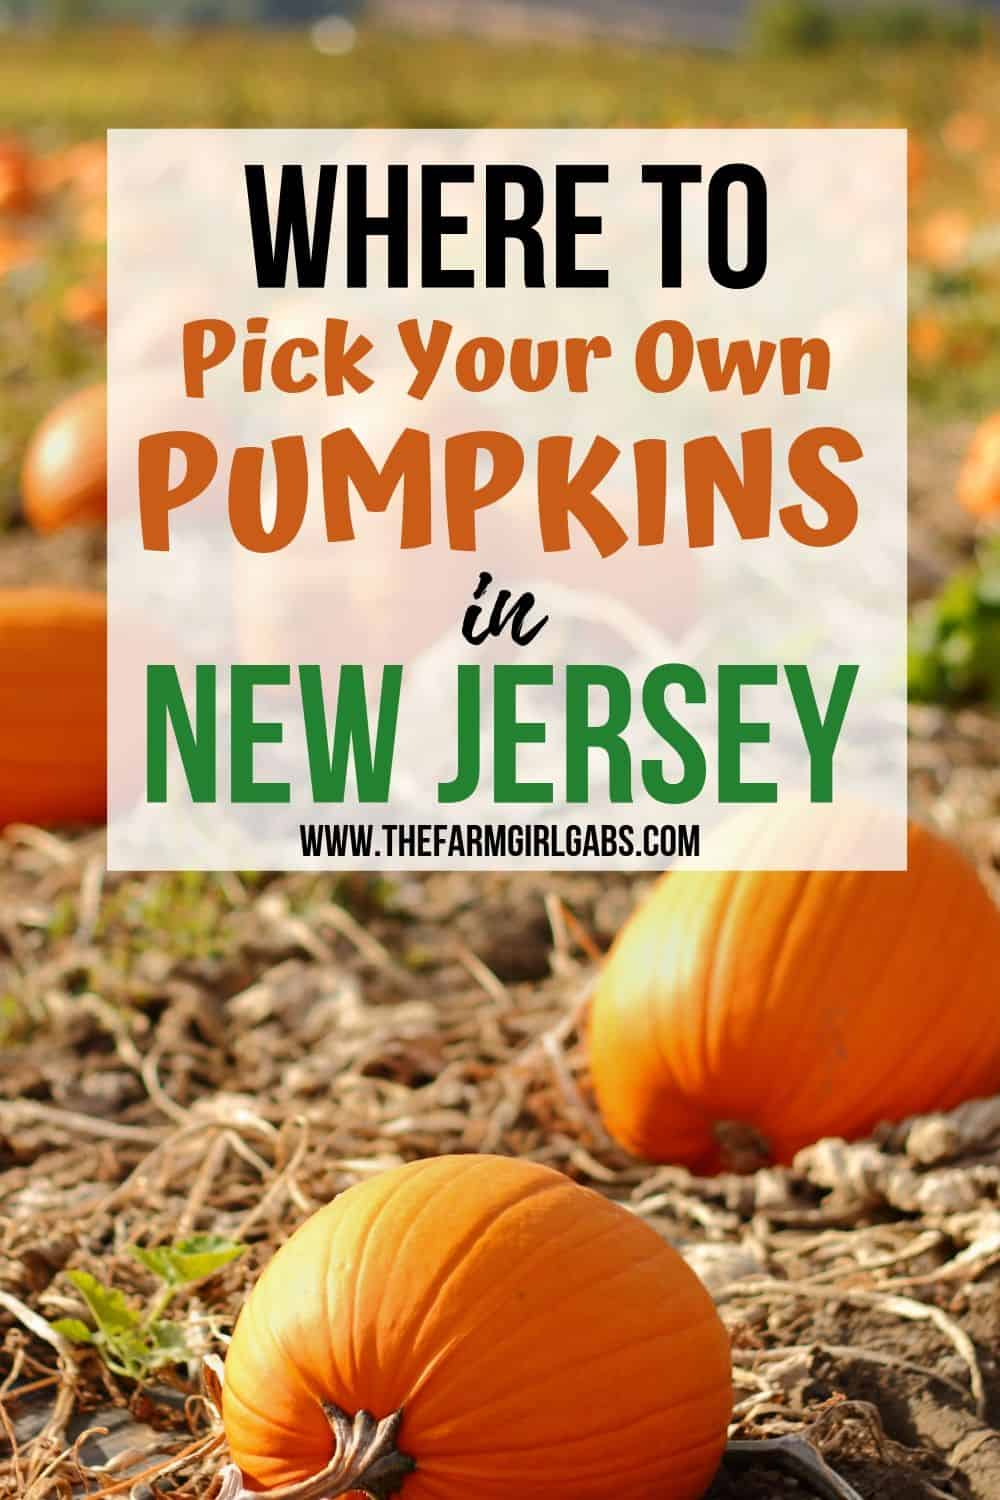 Find Your Perfect Pumpkin at one of these New Jersey Pumpkin Patches. Take the family out for some fall fun and pick your own pumpkins in New Jersey. You will have a blast pumpkin picking at one of the New Jersey Farms #Halloween #Halloweencraft #pumpkinpatch #pickyourownpumpkins